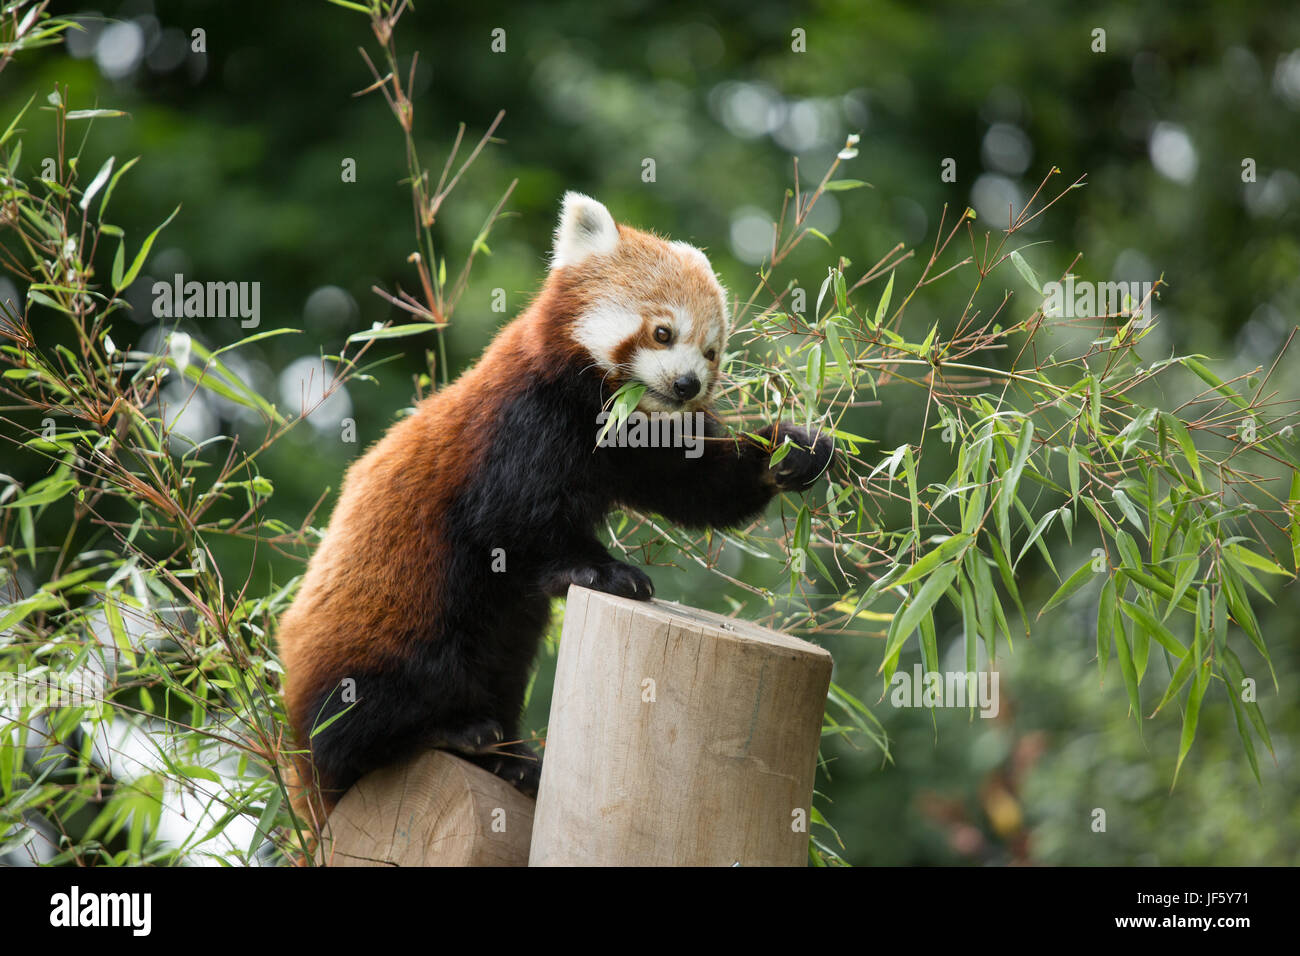 A Red Panda at Birmingham Nature Centre. Birmingham host the IAAF Championships in 2018 and named their Mascot Ruby, - Stock Image